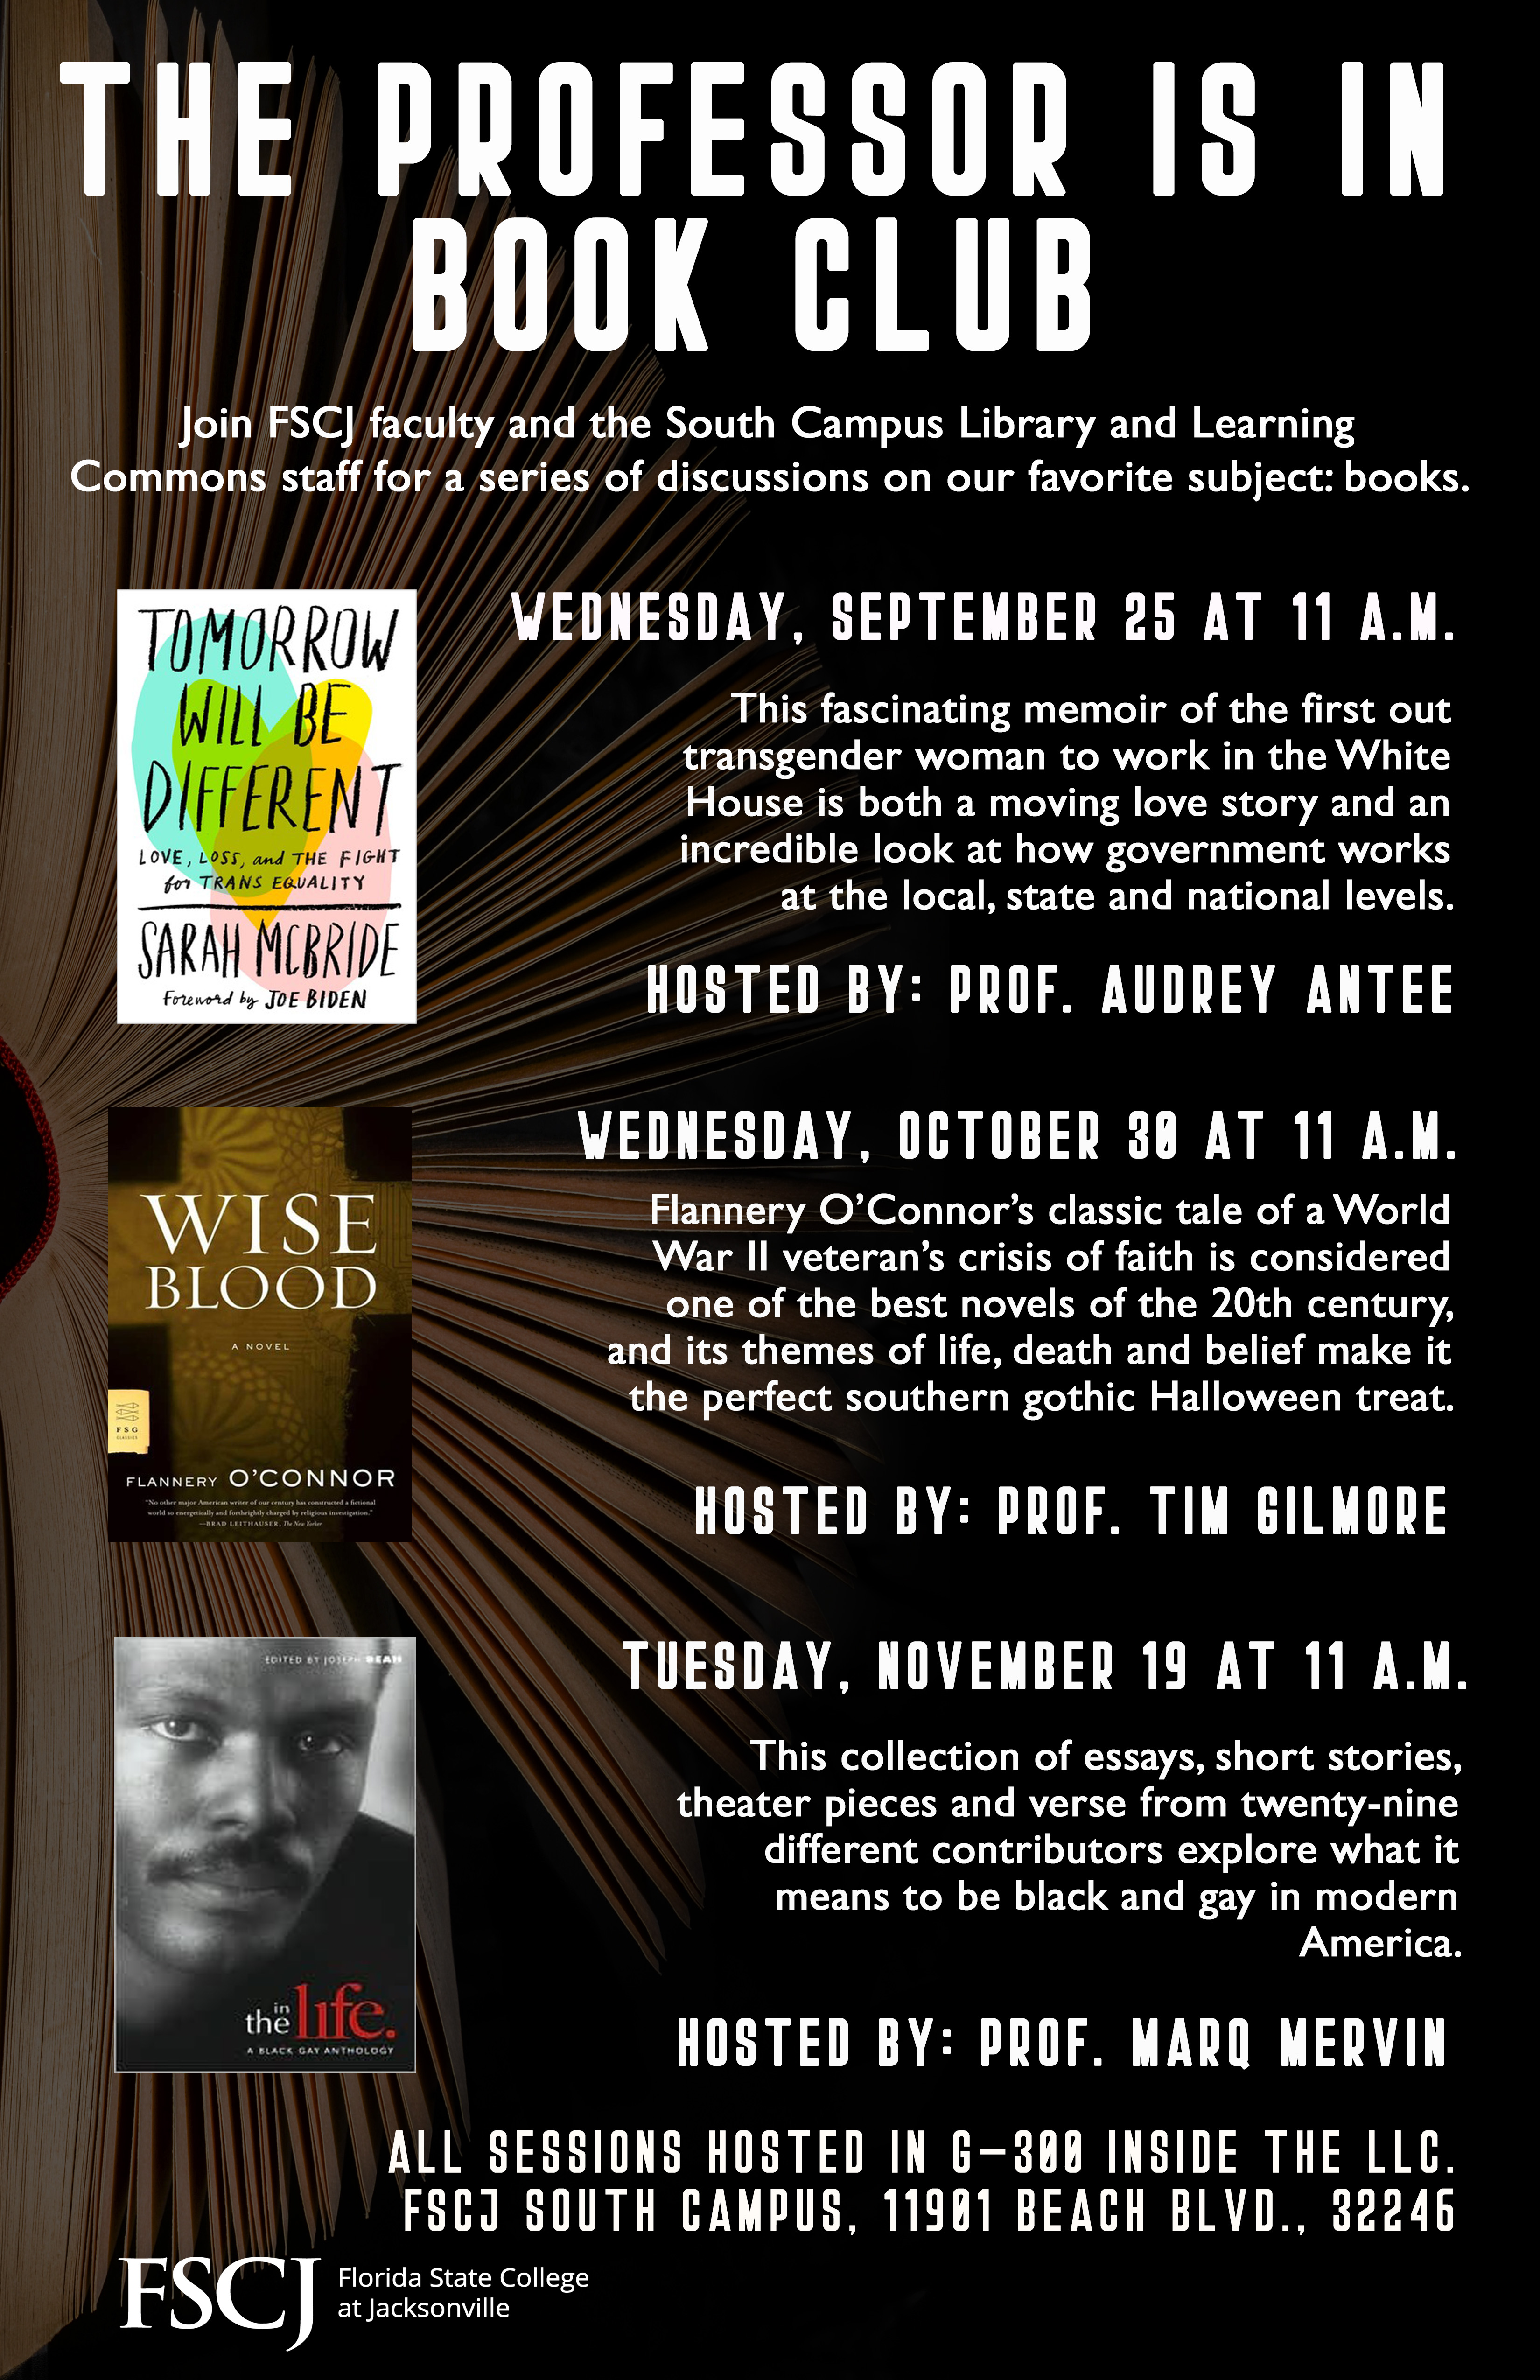 The Professor Is In Book Club: Tomorrow Will Be Different with Prof. Audrey Antee